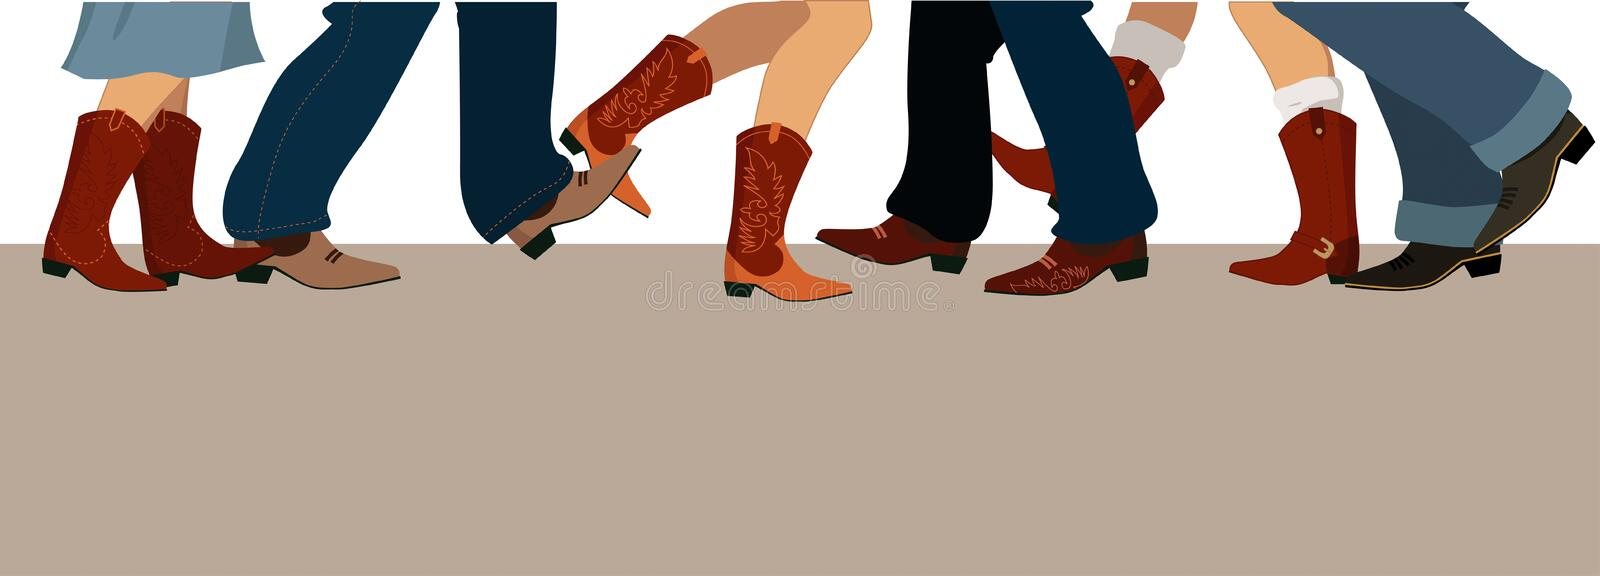 Country dancing banner royalty free illustration